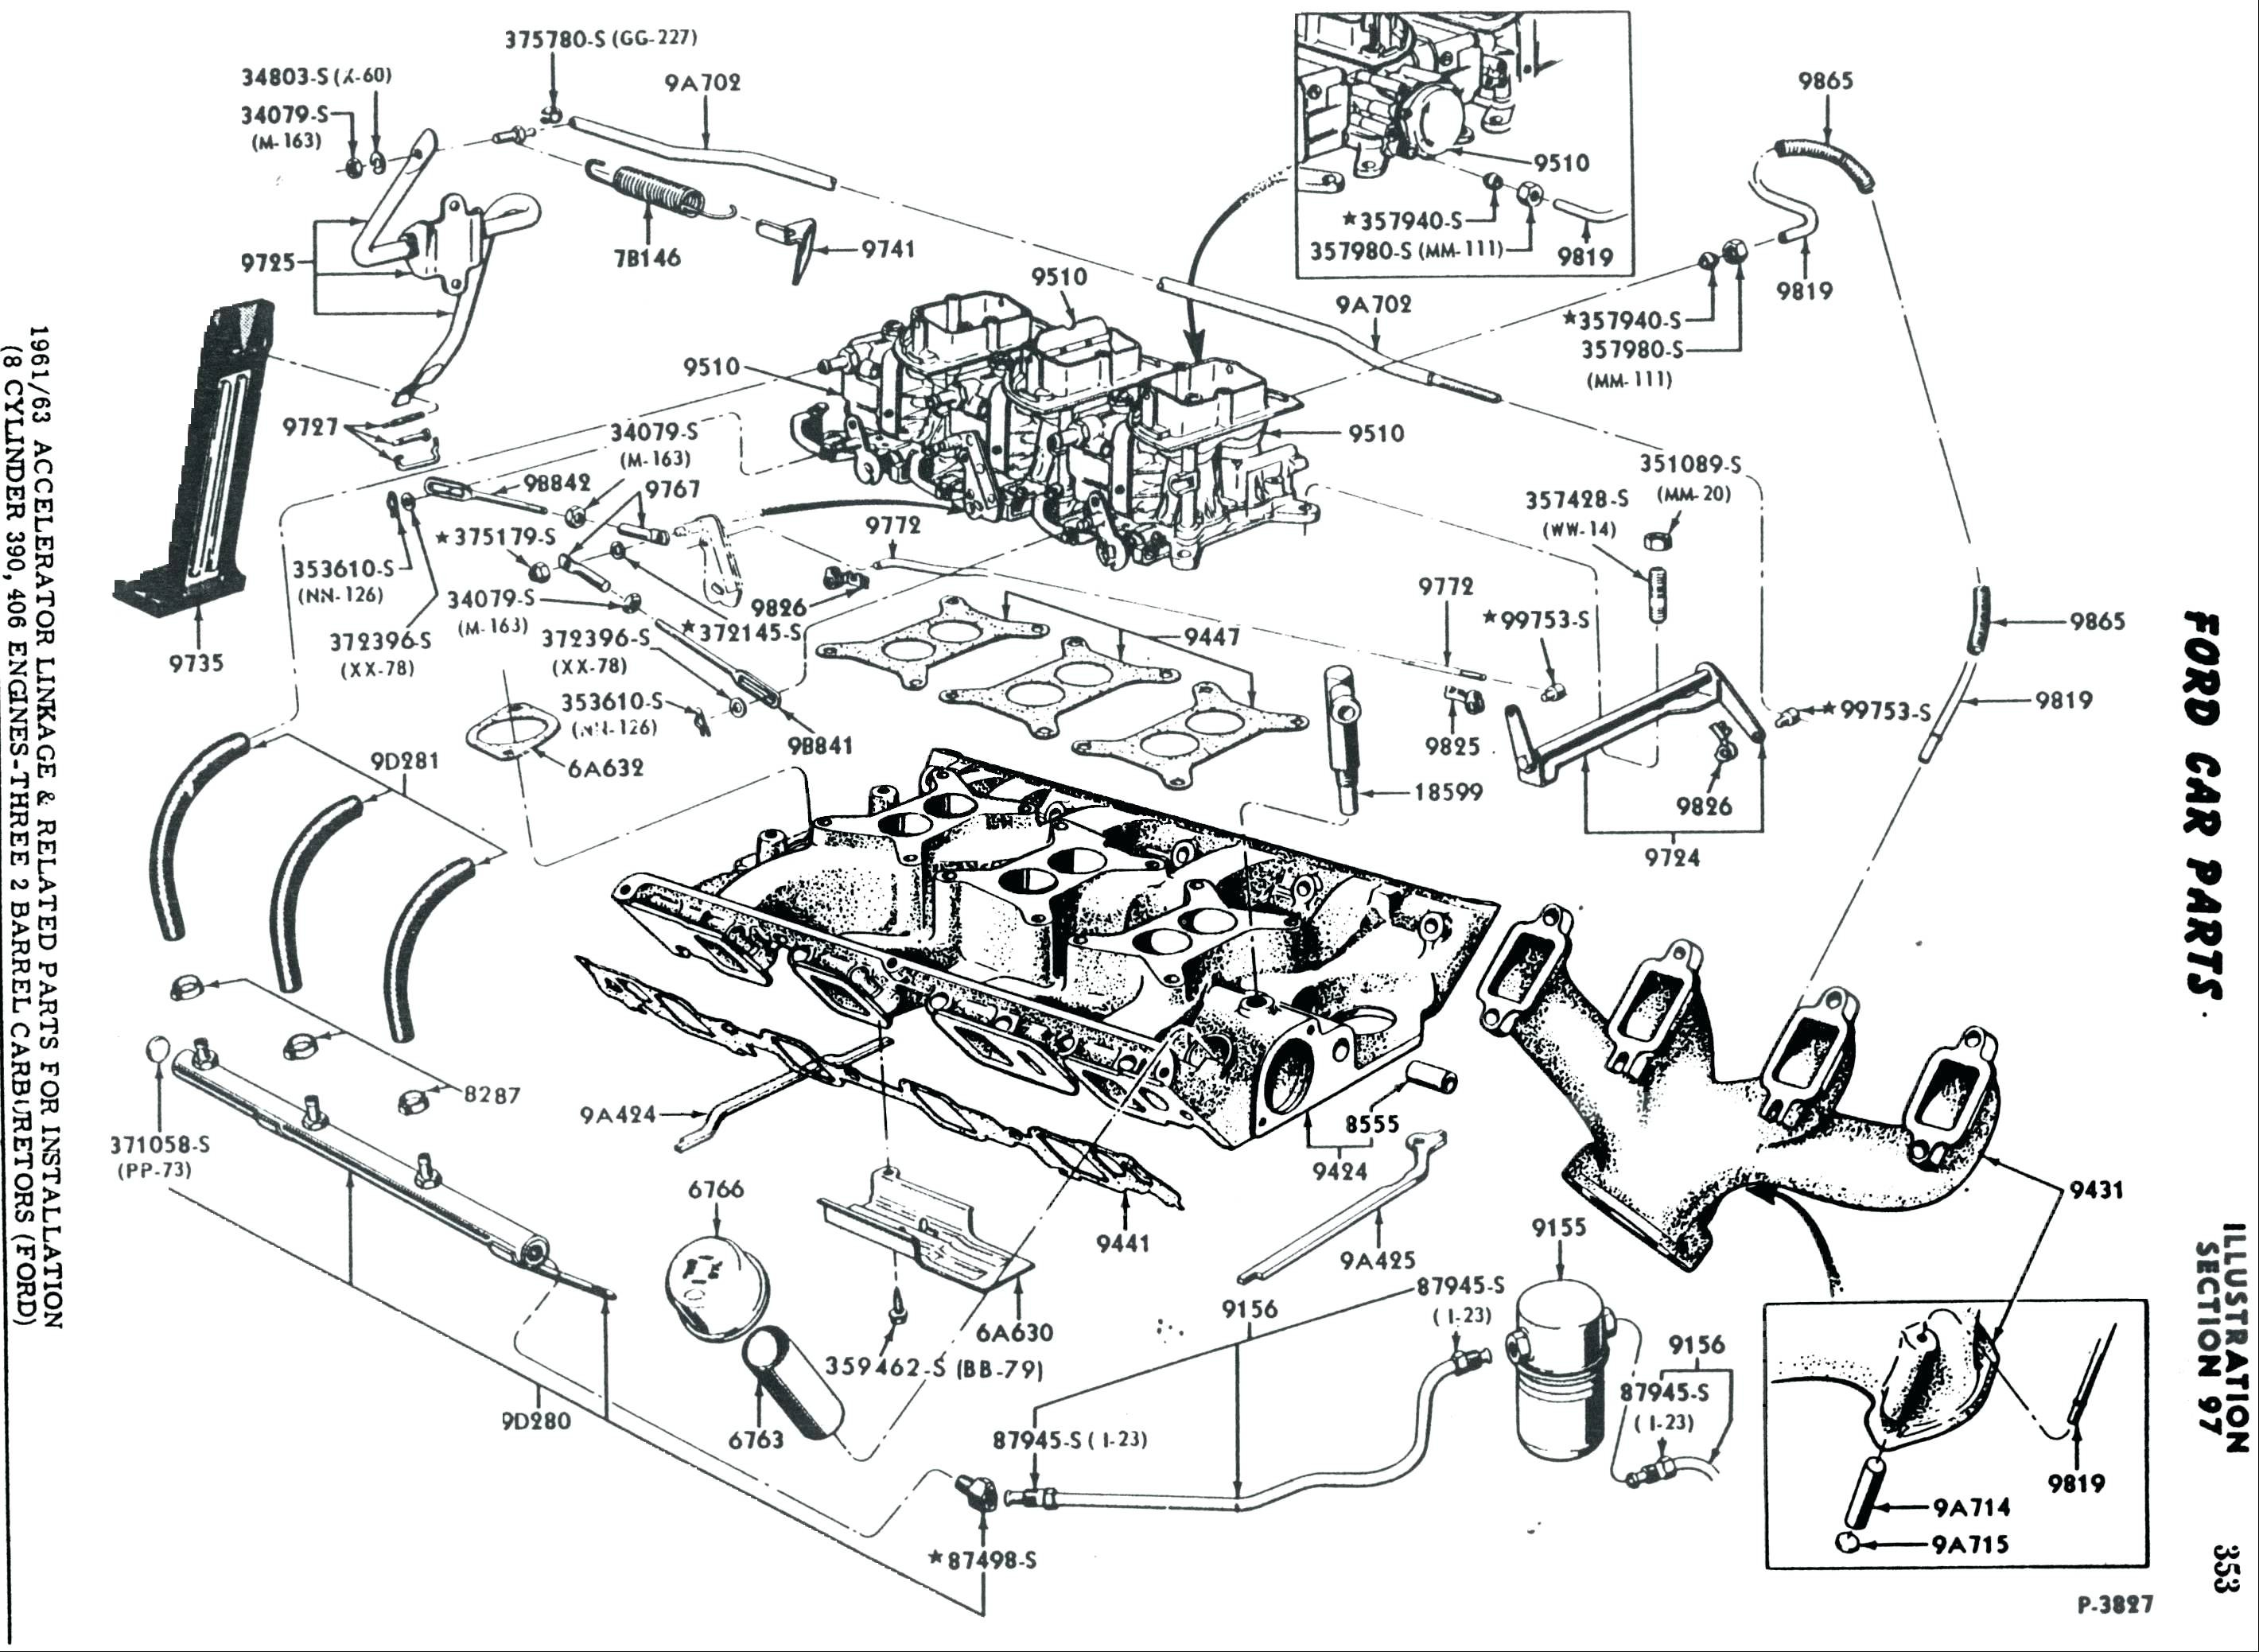 Diagram Of The 2009 Toyota Camry Trusted Wiring Fuse Engine Introduction To Electrical 1995 Box